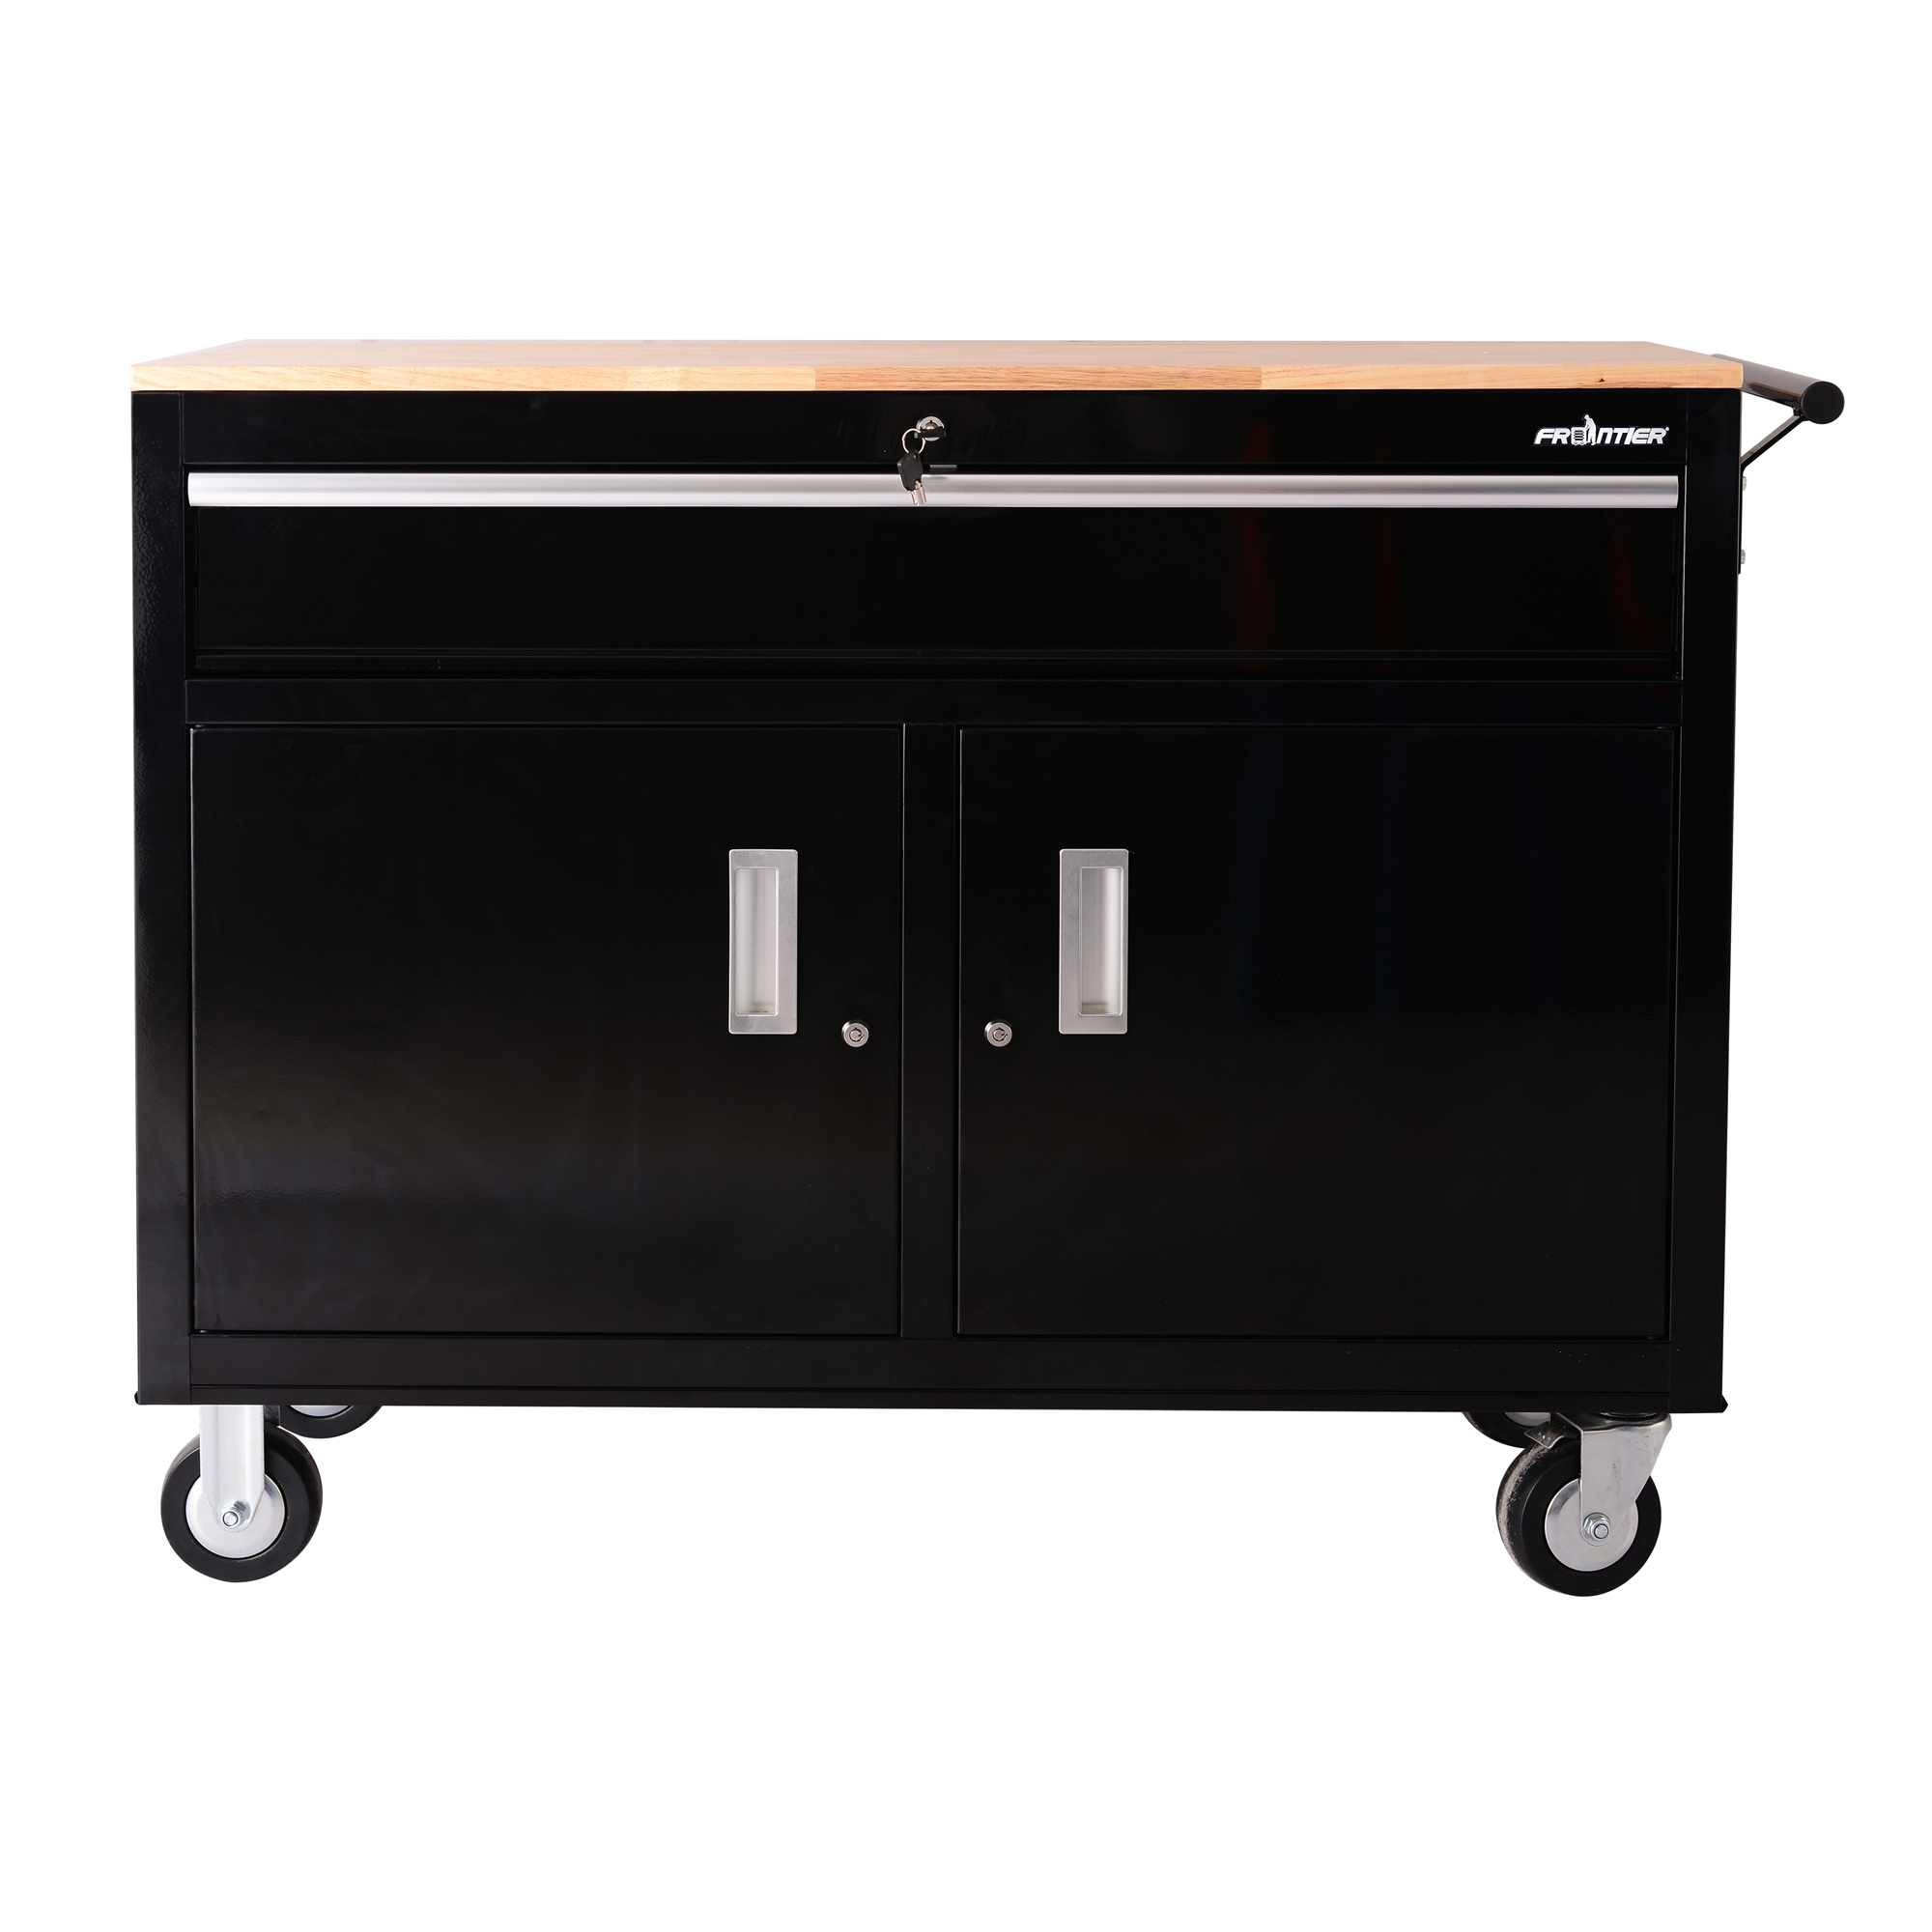 46 inch Frontier Mobile Work Station - Tool Chest Organizer